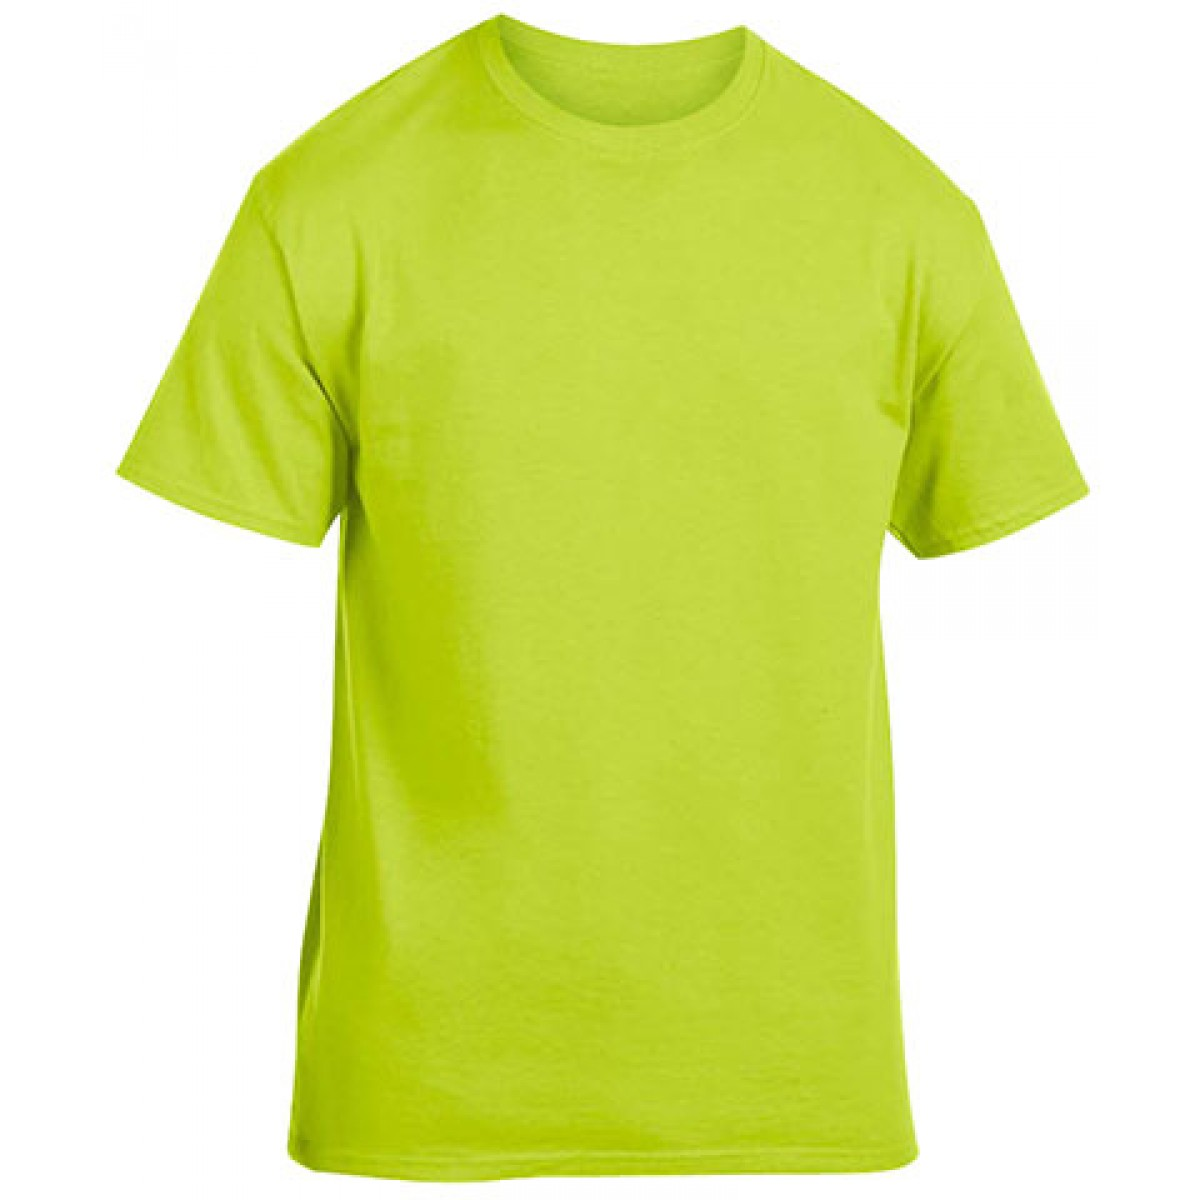 Cotton Short Sleeve T-Shirt-Safety Green-3XL